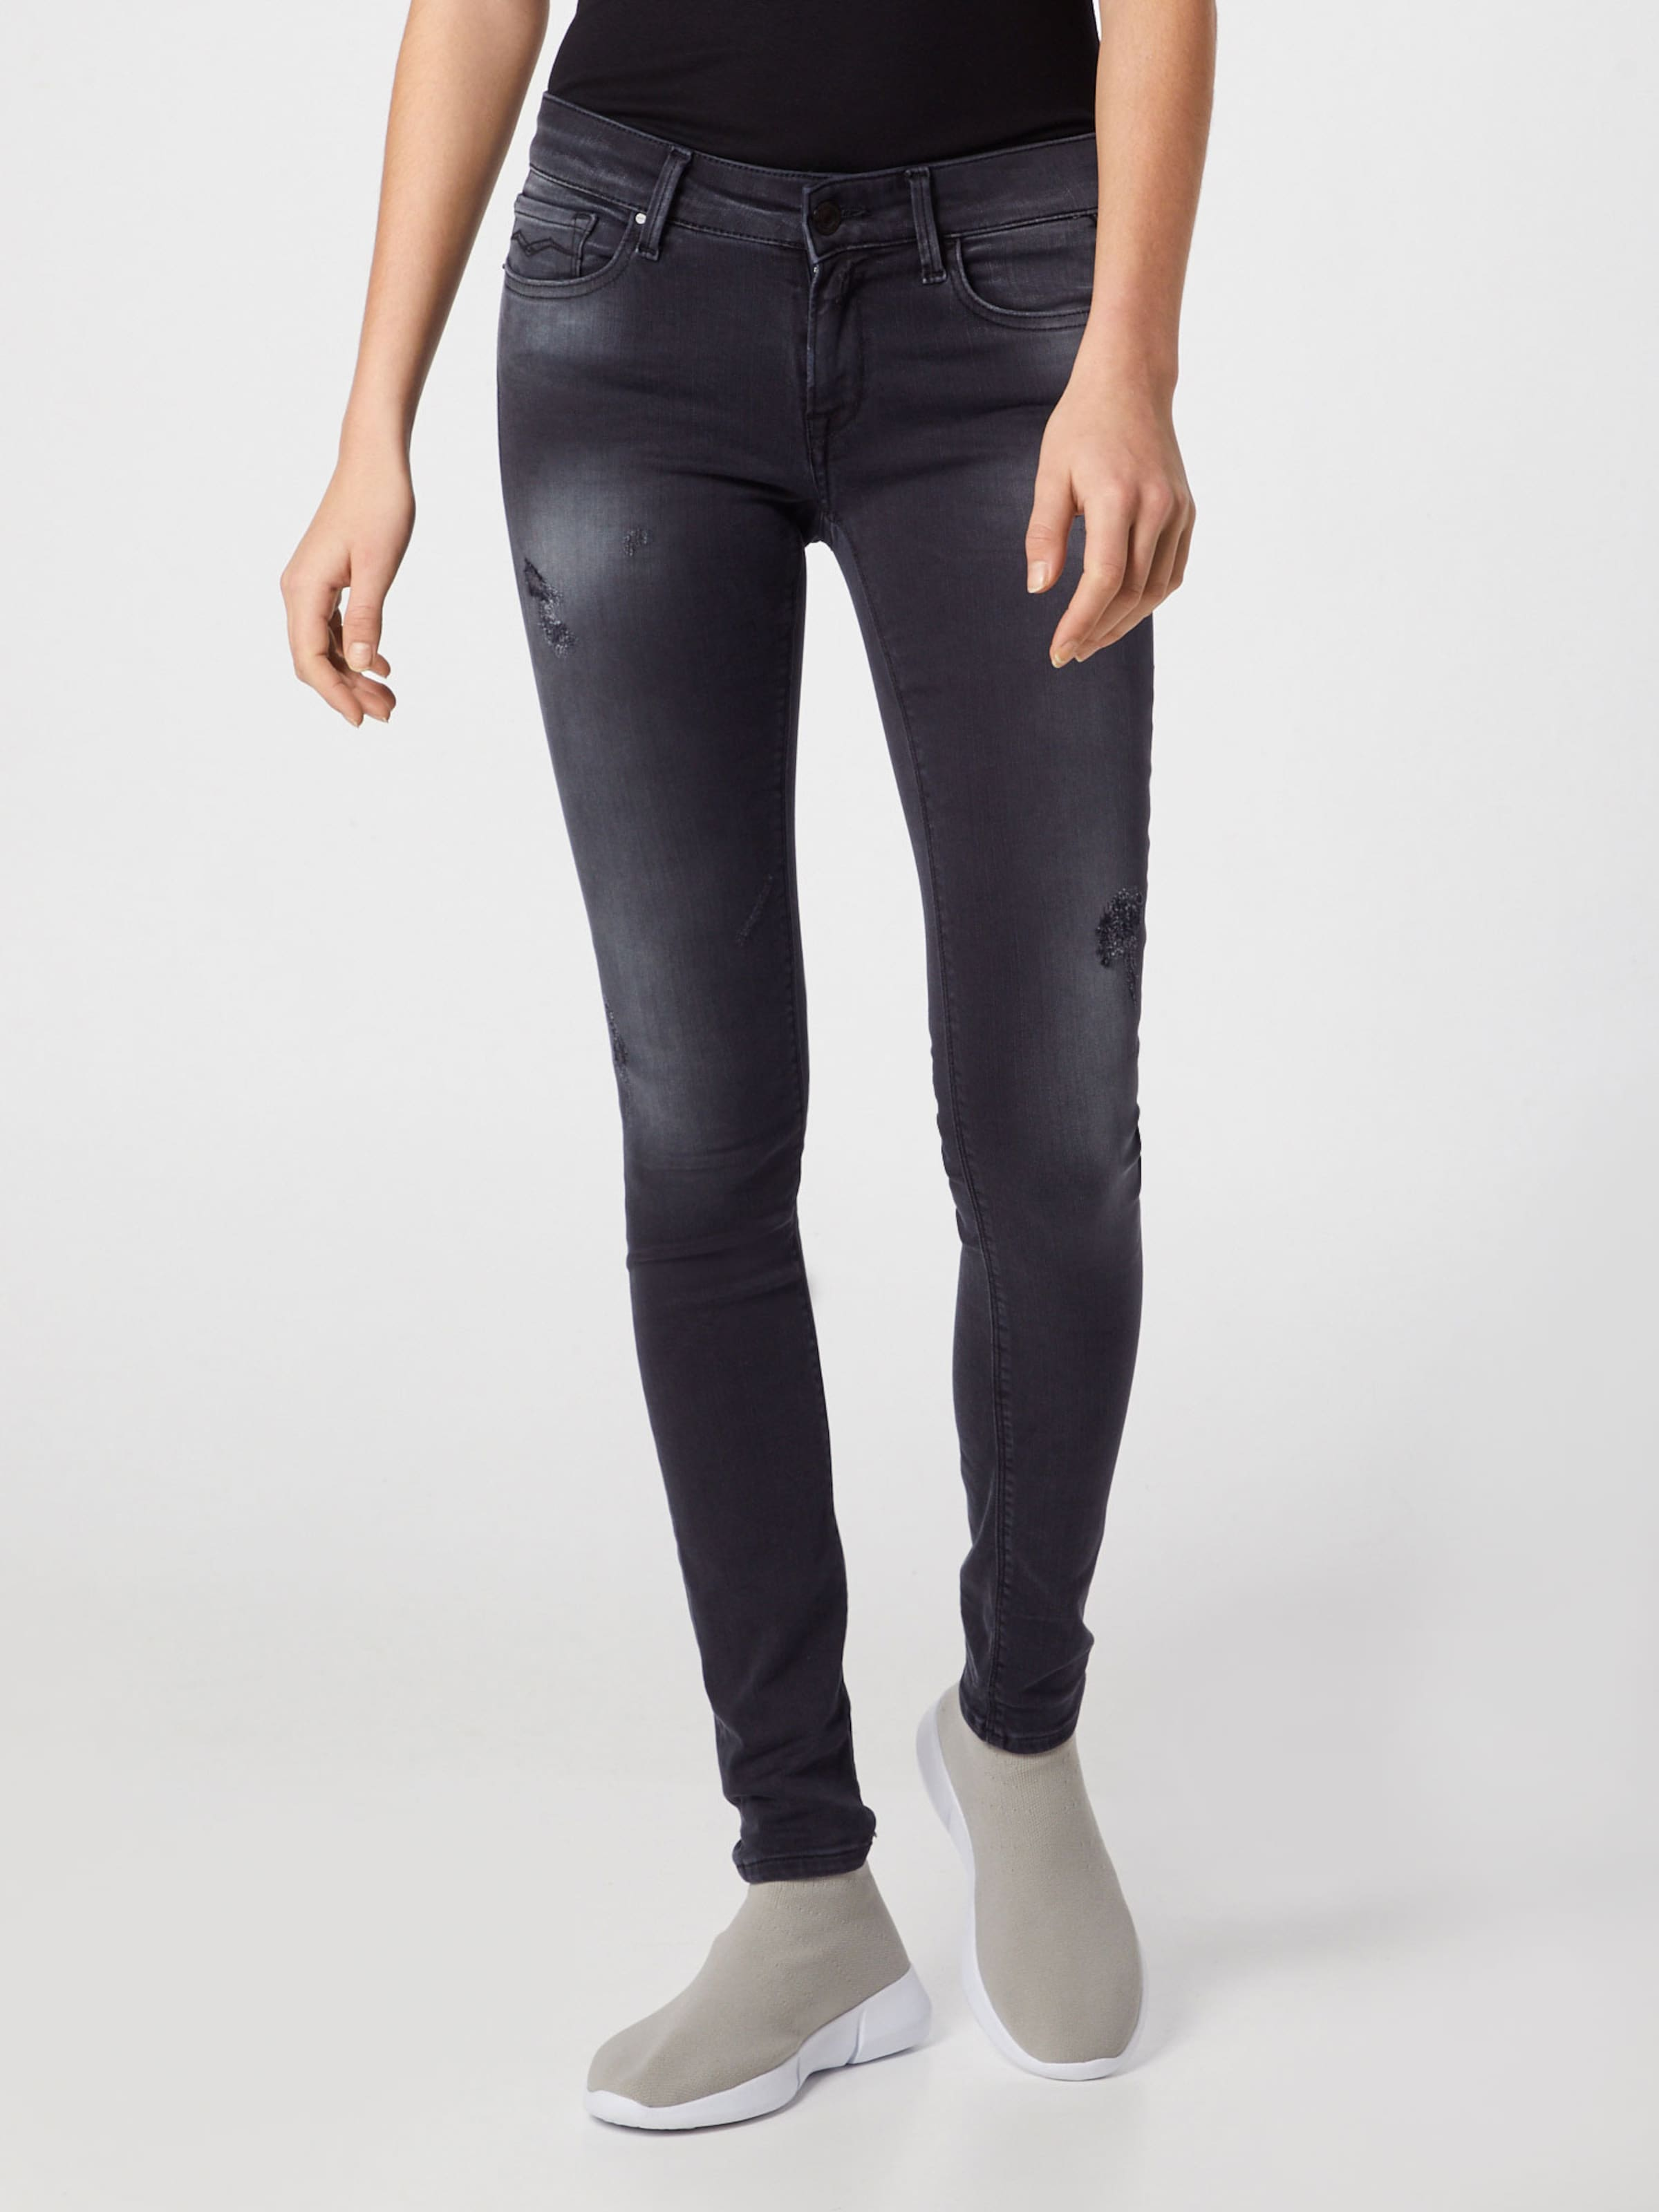 Jeans Grey Denim Replay 'luz' In sBdCxthrQ